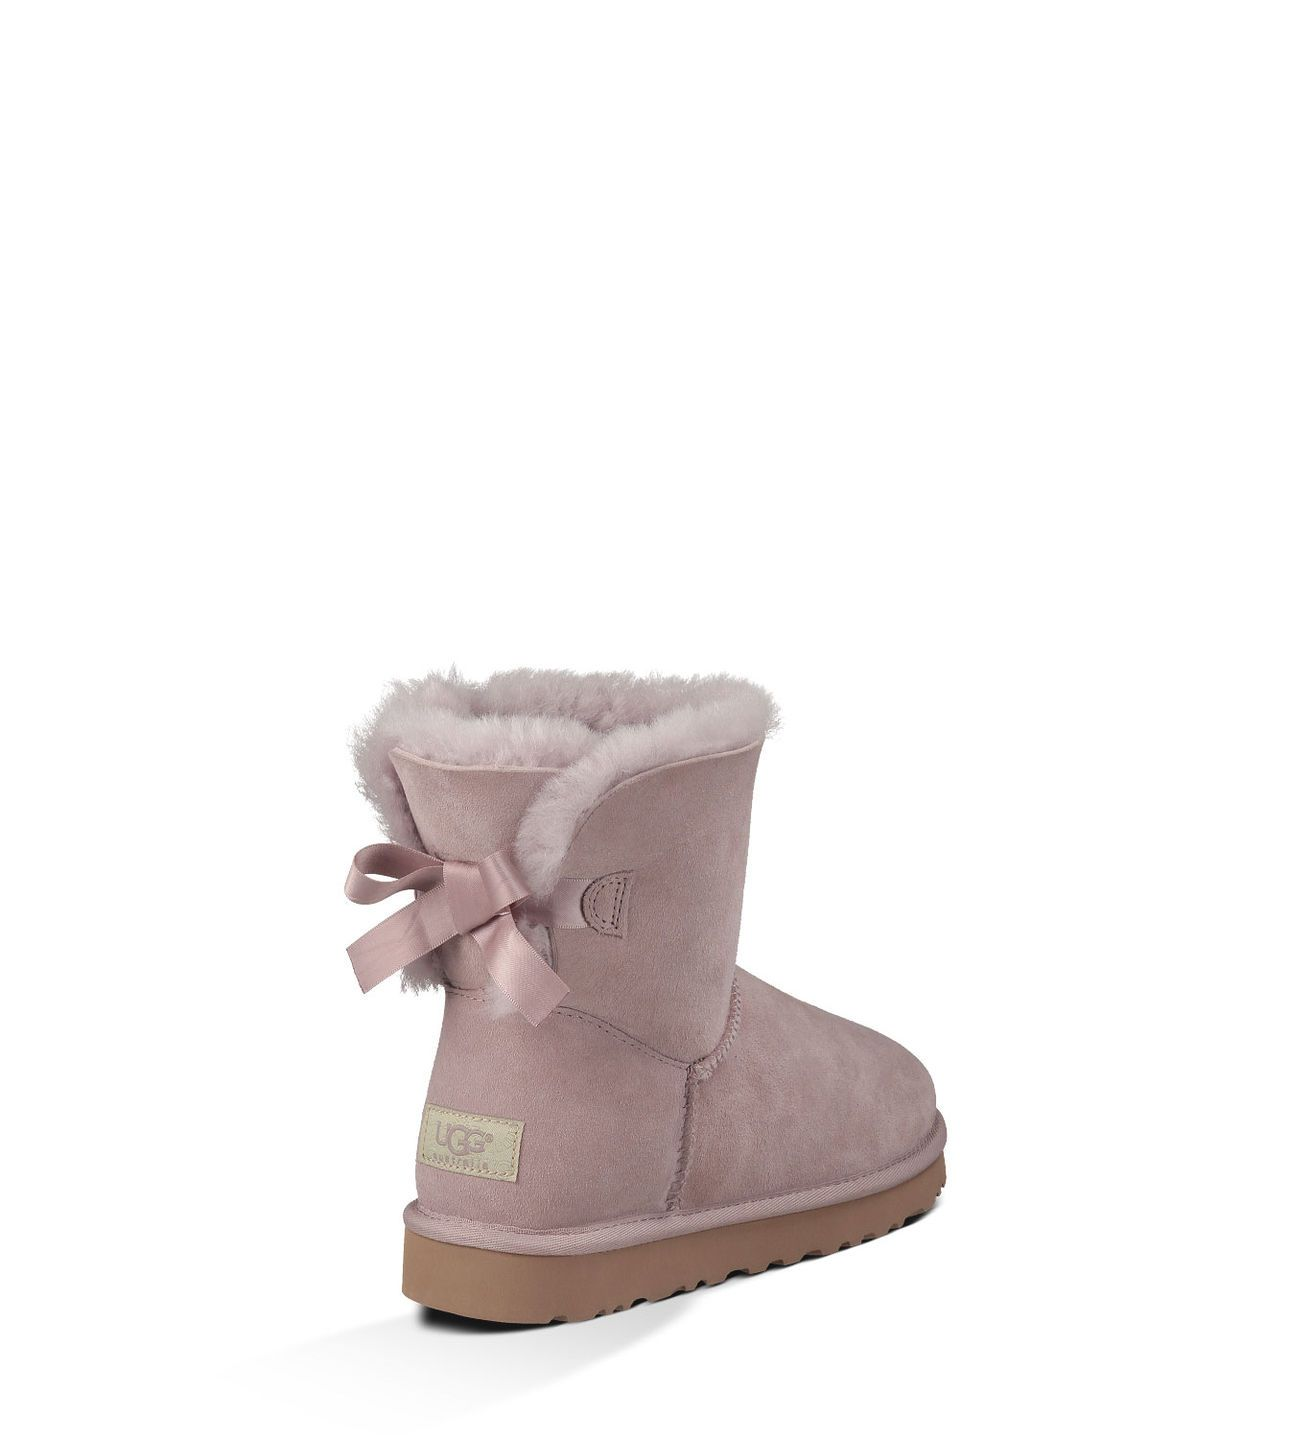 The Official Ugg Uk Website Free Delivery On All Boots Shoes Bags And Accessories When You Directly From Online